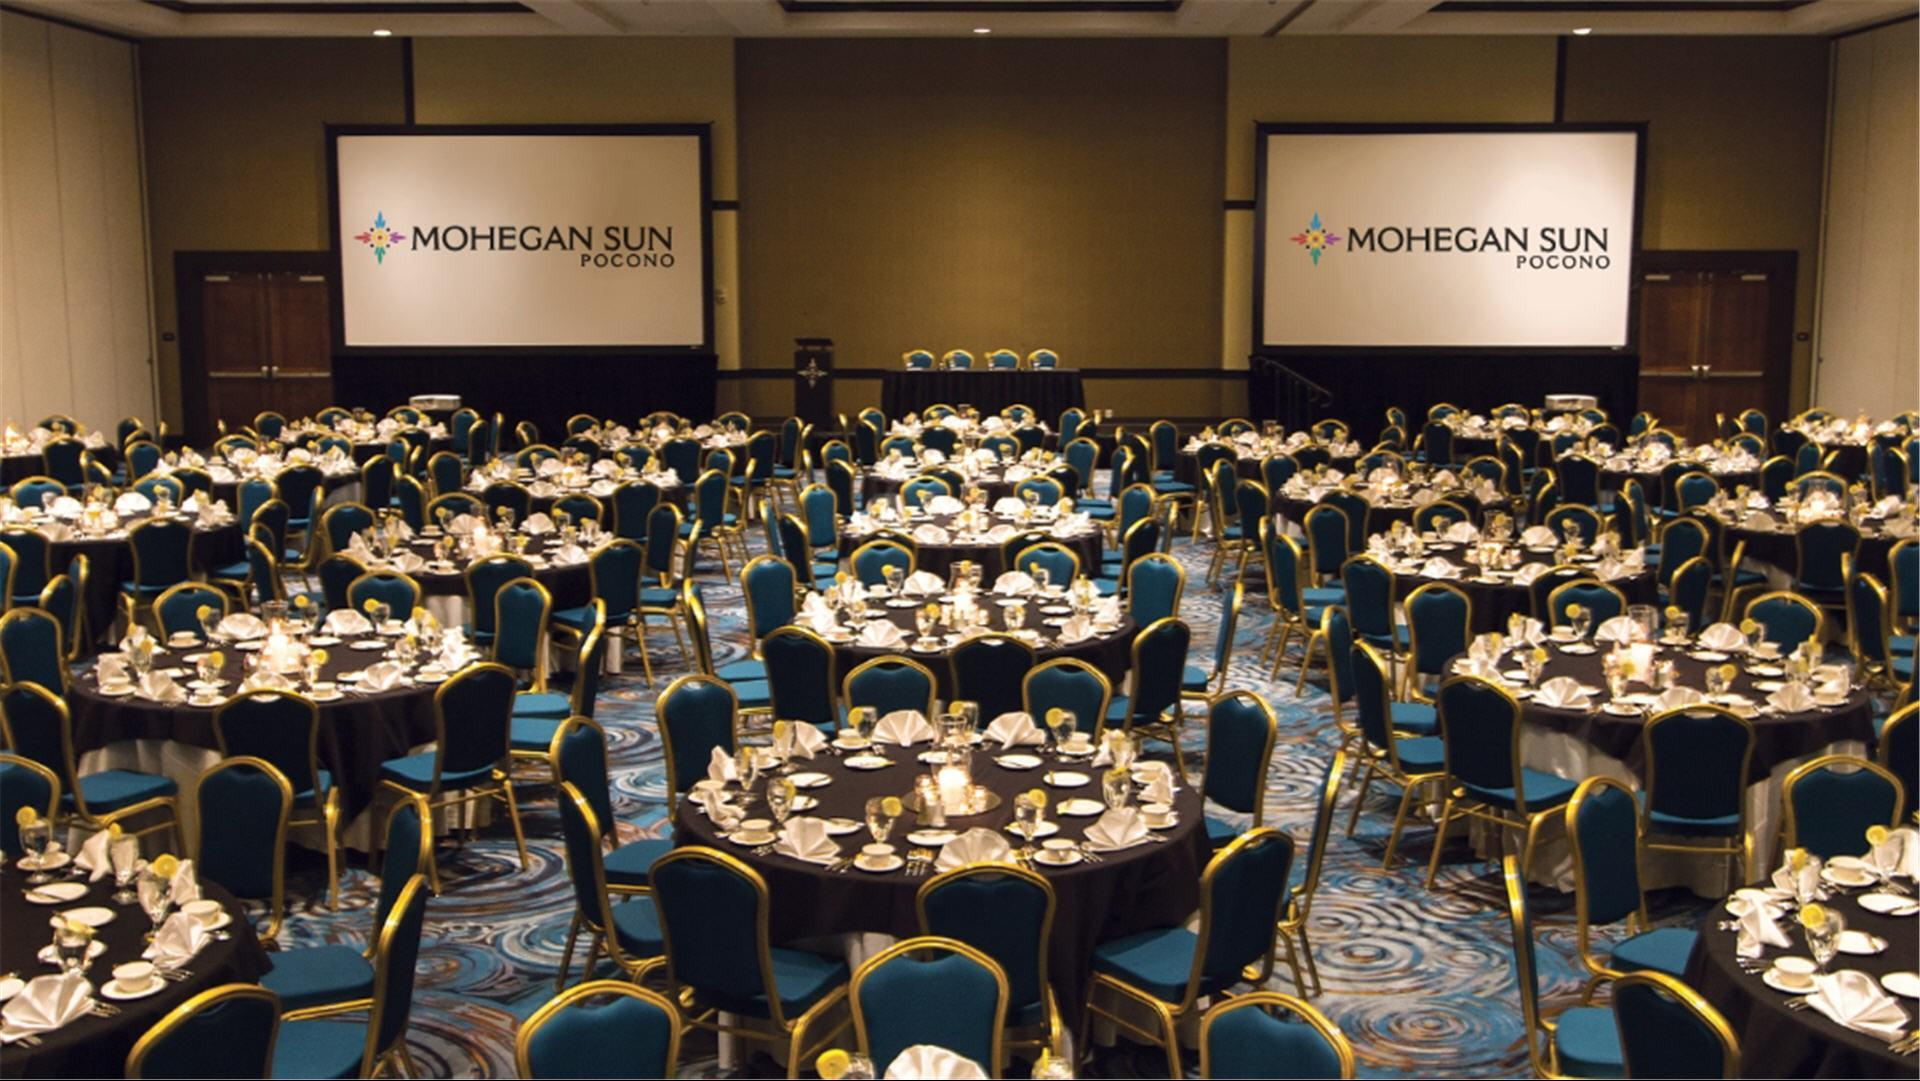 Meetings and events at Mohegan Sun Pocono, Wilkes-Barre, PA, US